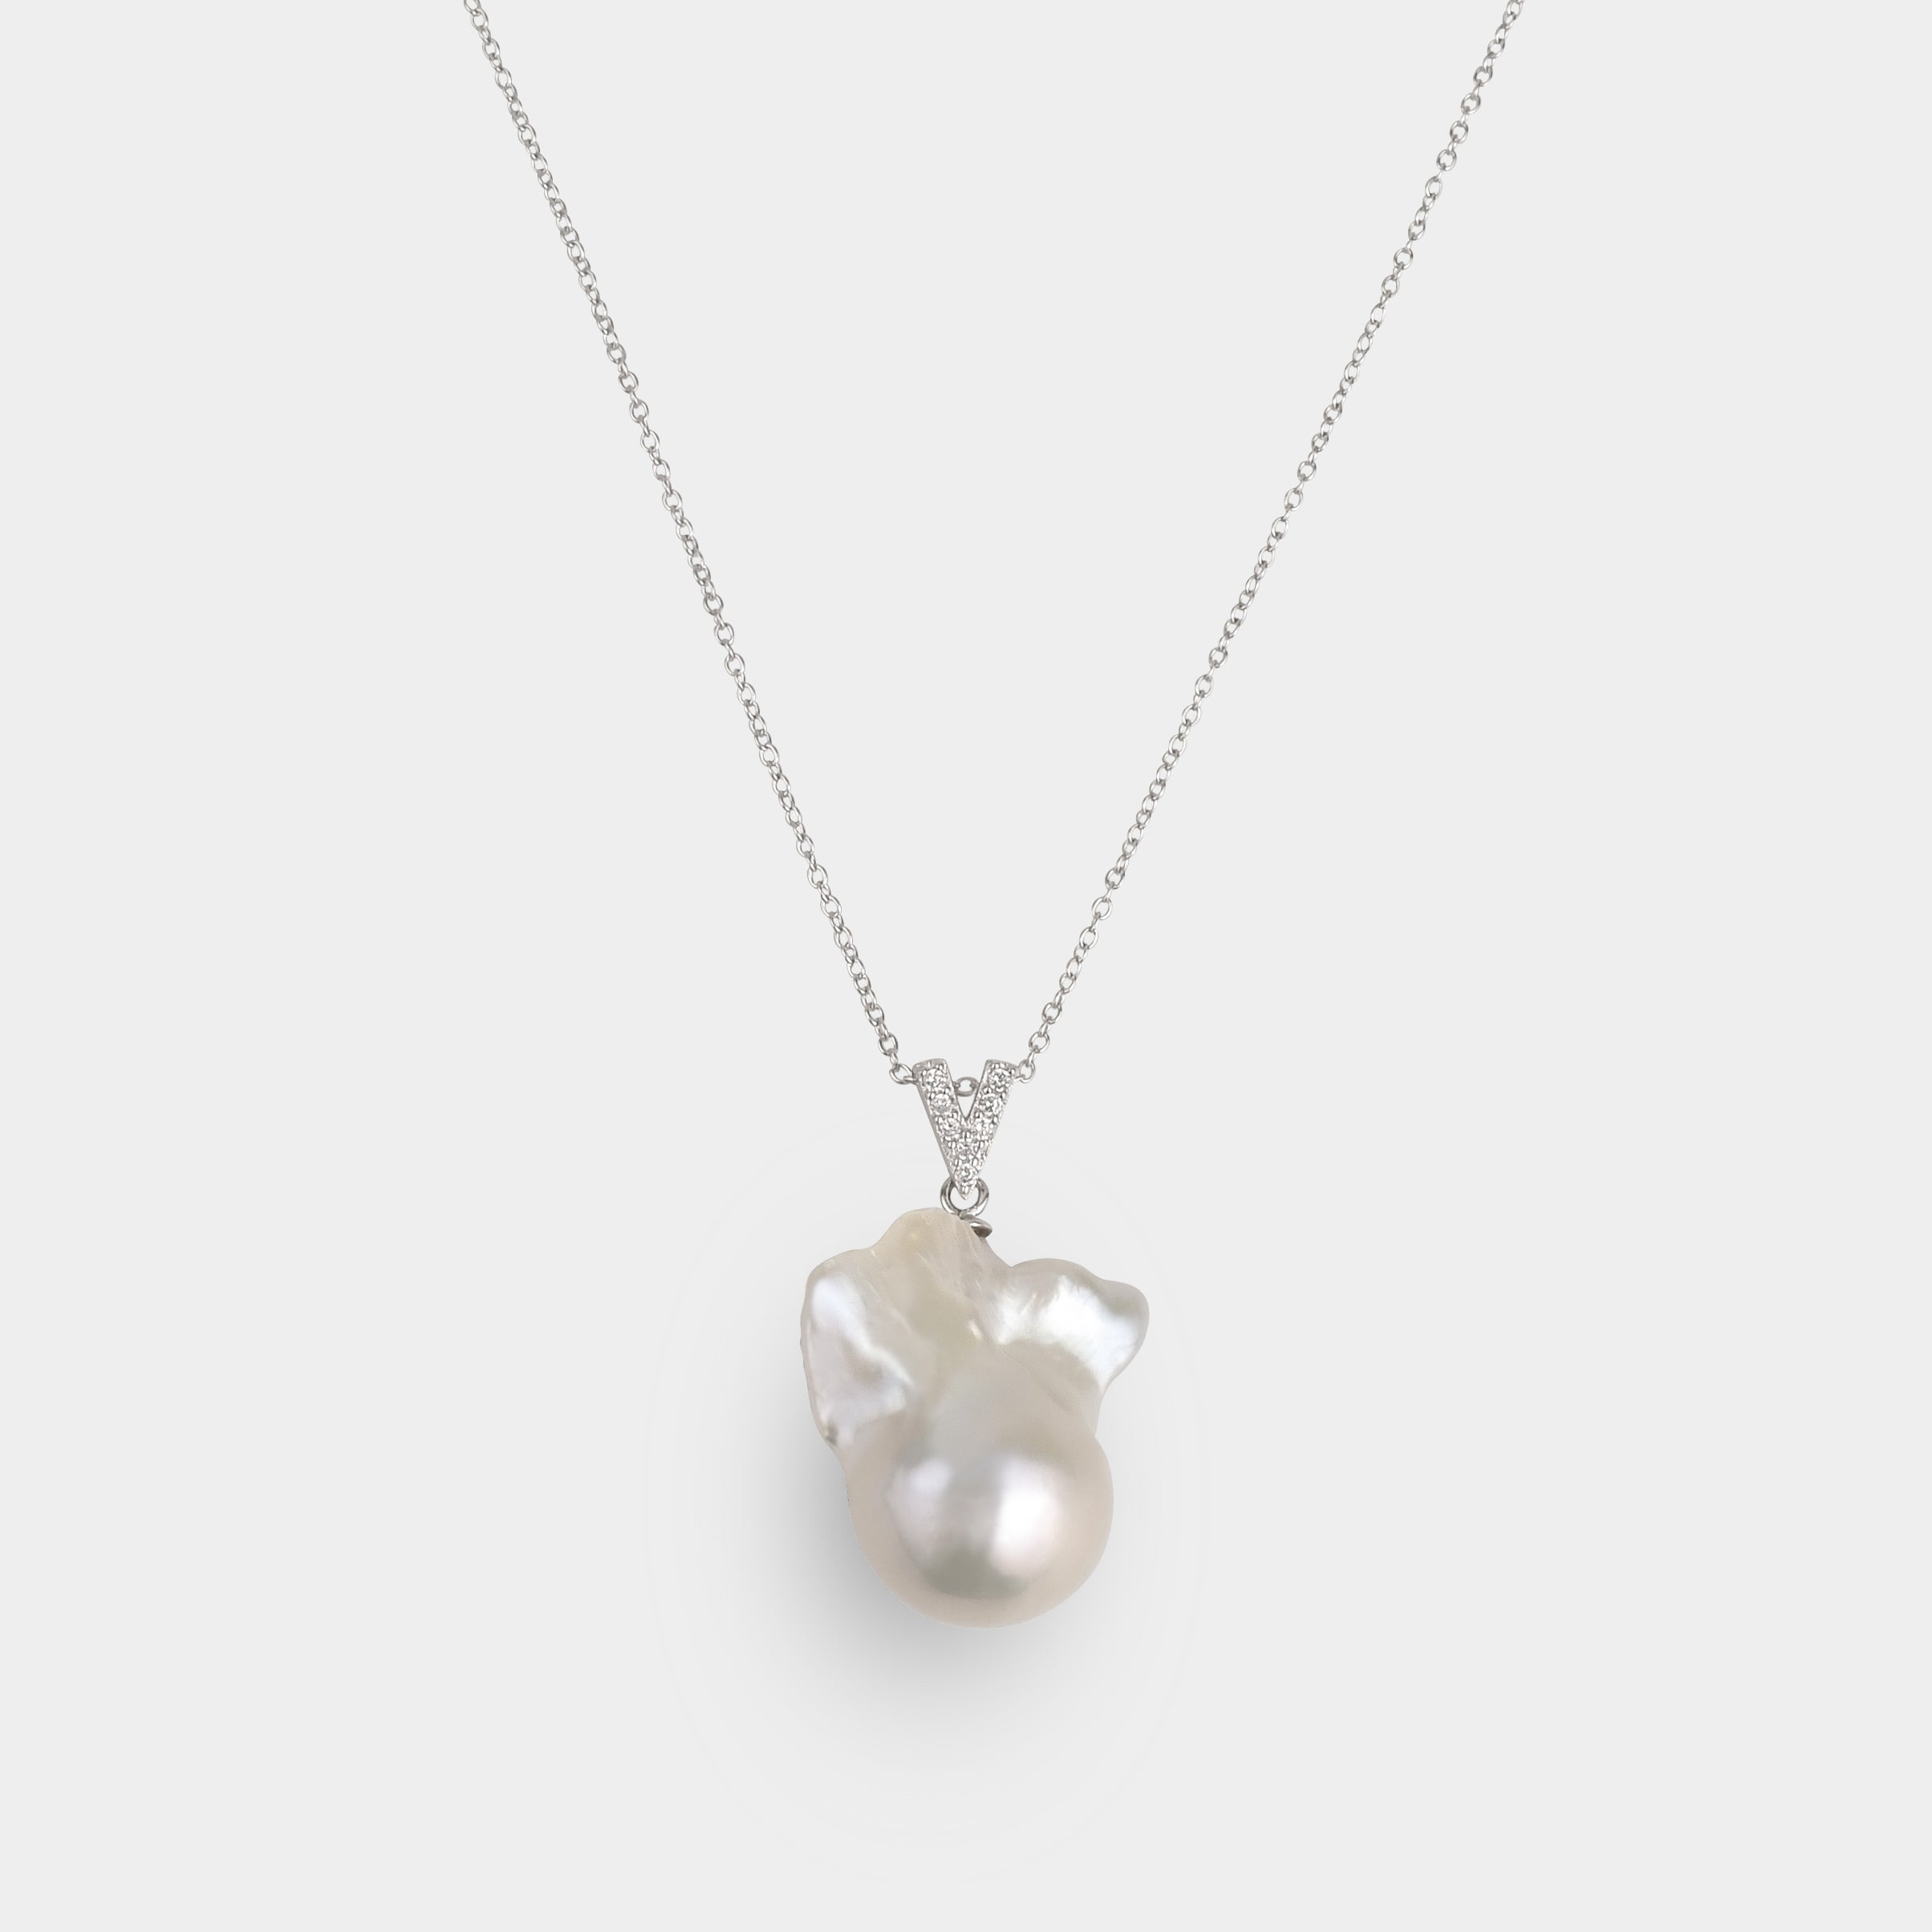 LU'LU PEARL NECKLACE